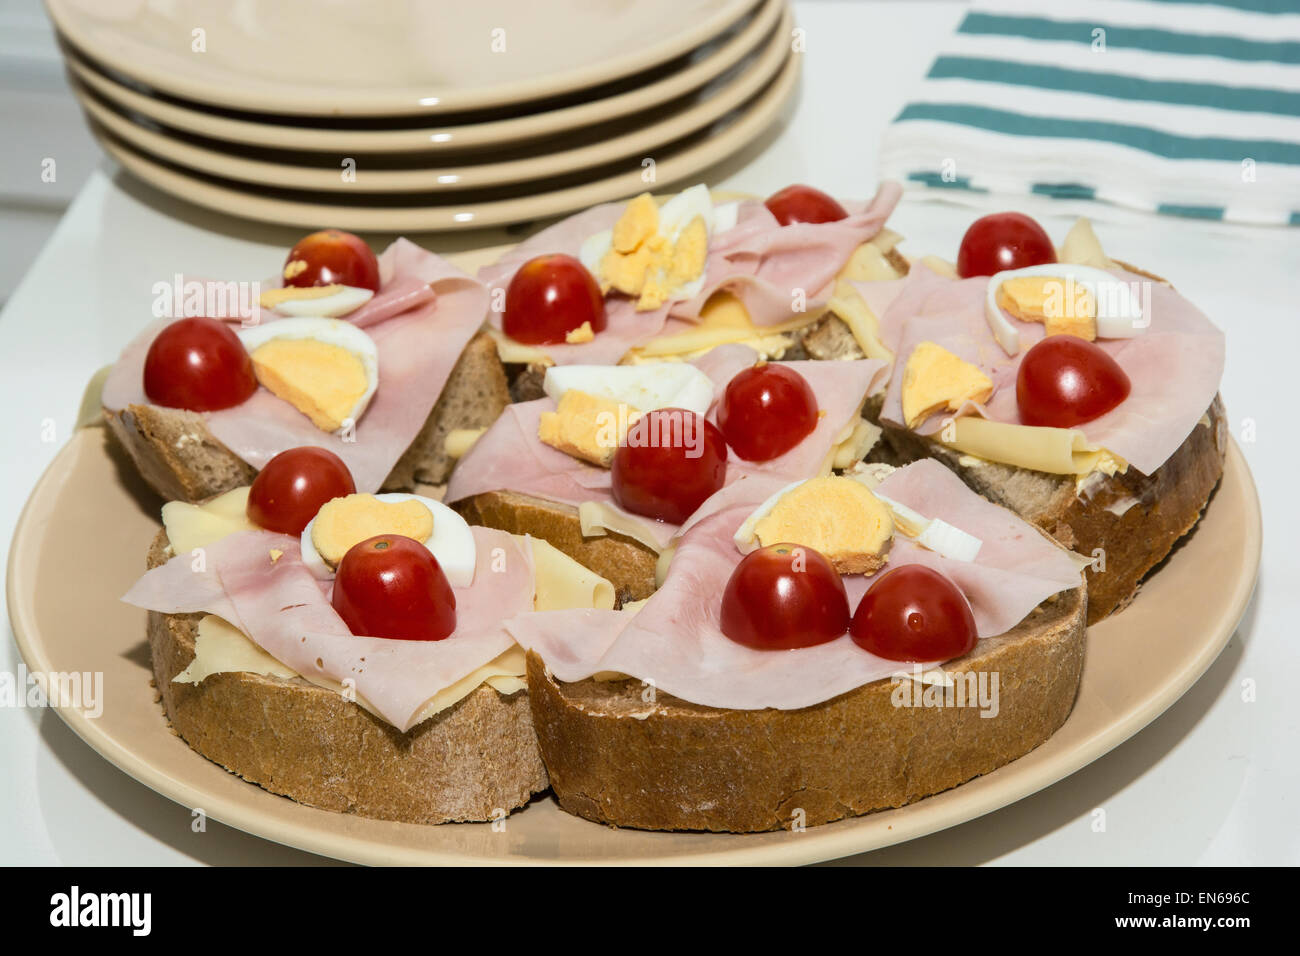 Sandwiches with egg, cheese, ham and cherry tomatoes. Food and drink theme. Stock Photo